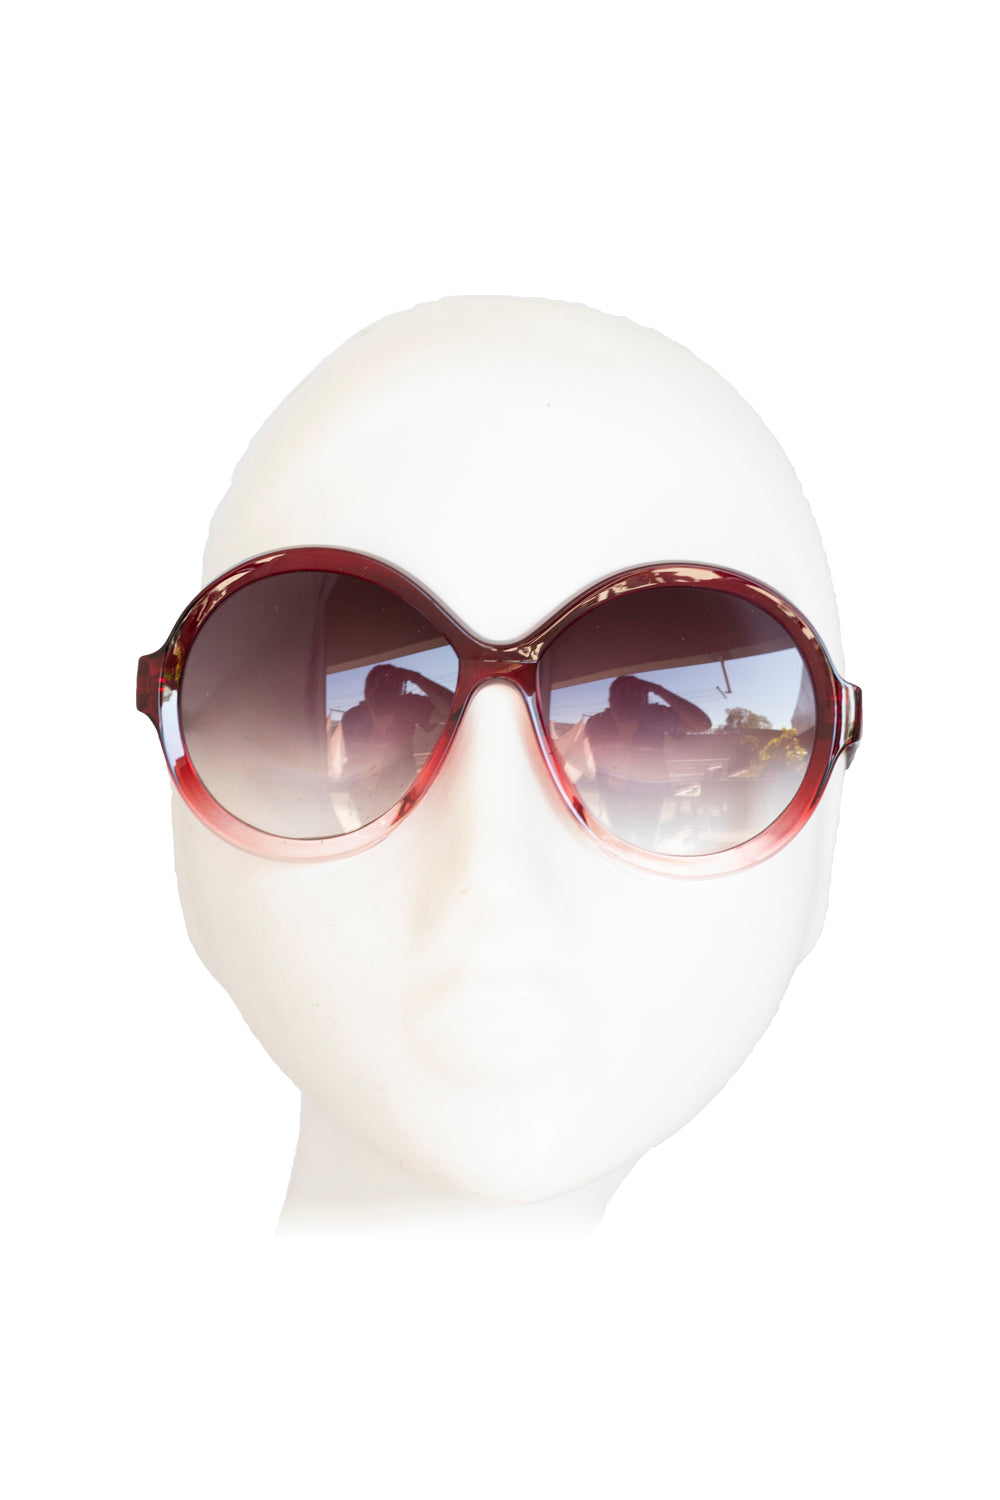 Priscilla Sunglasses | New Zealand Fashion Designer | Sunglasses | Annah Stretton